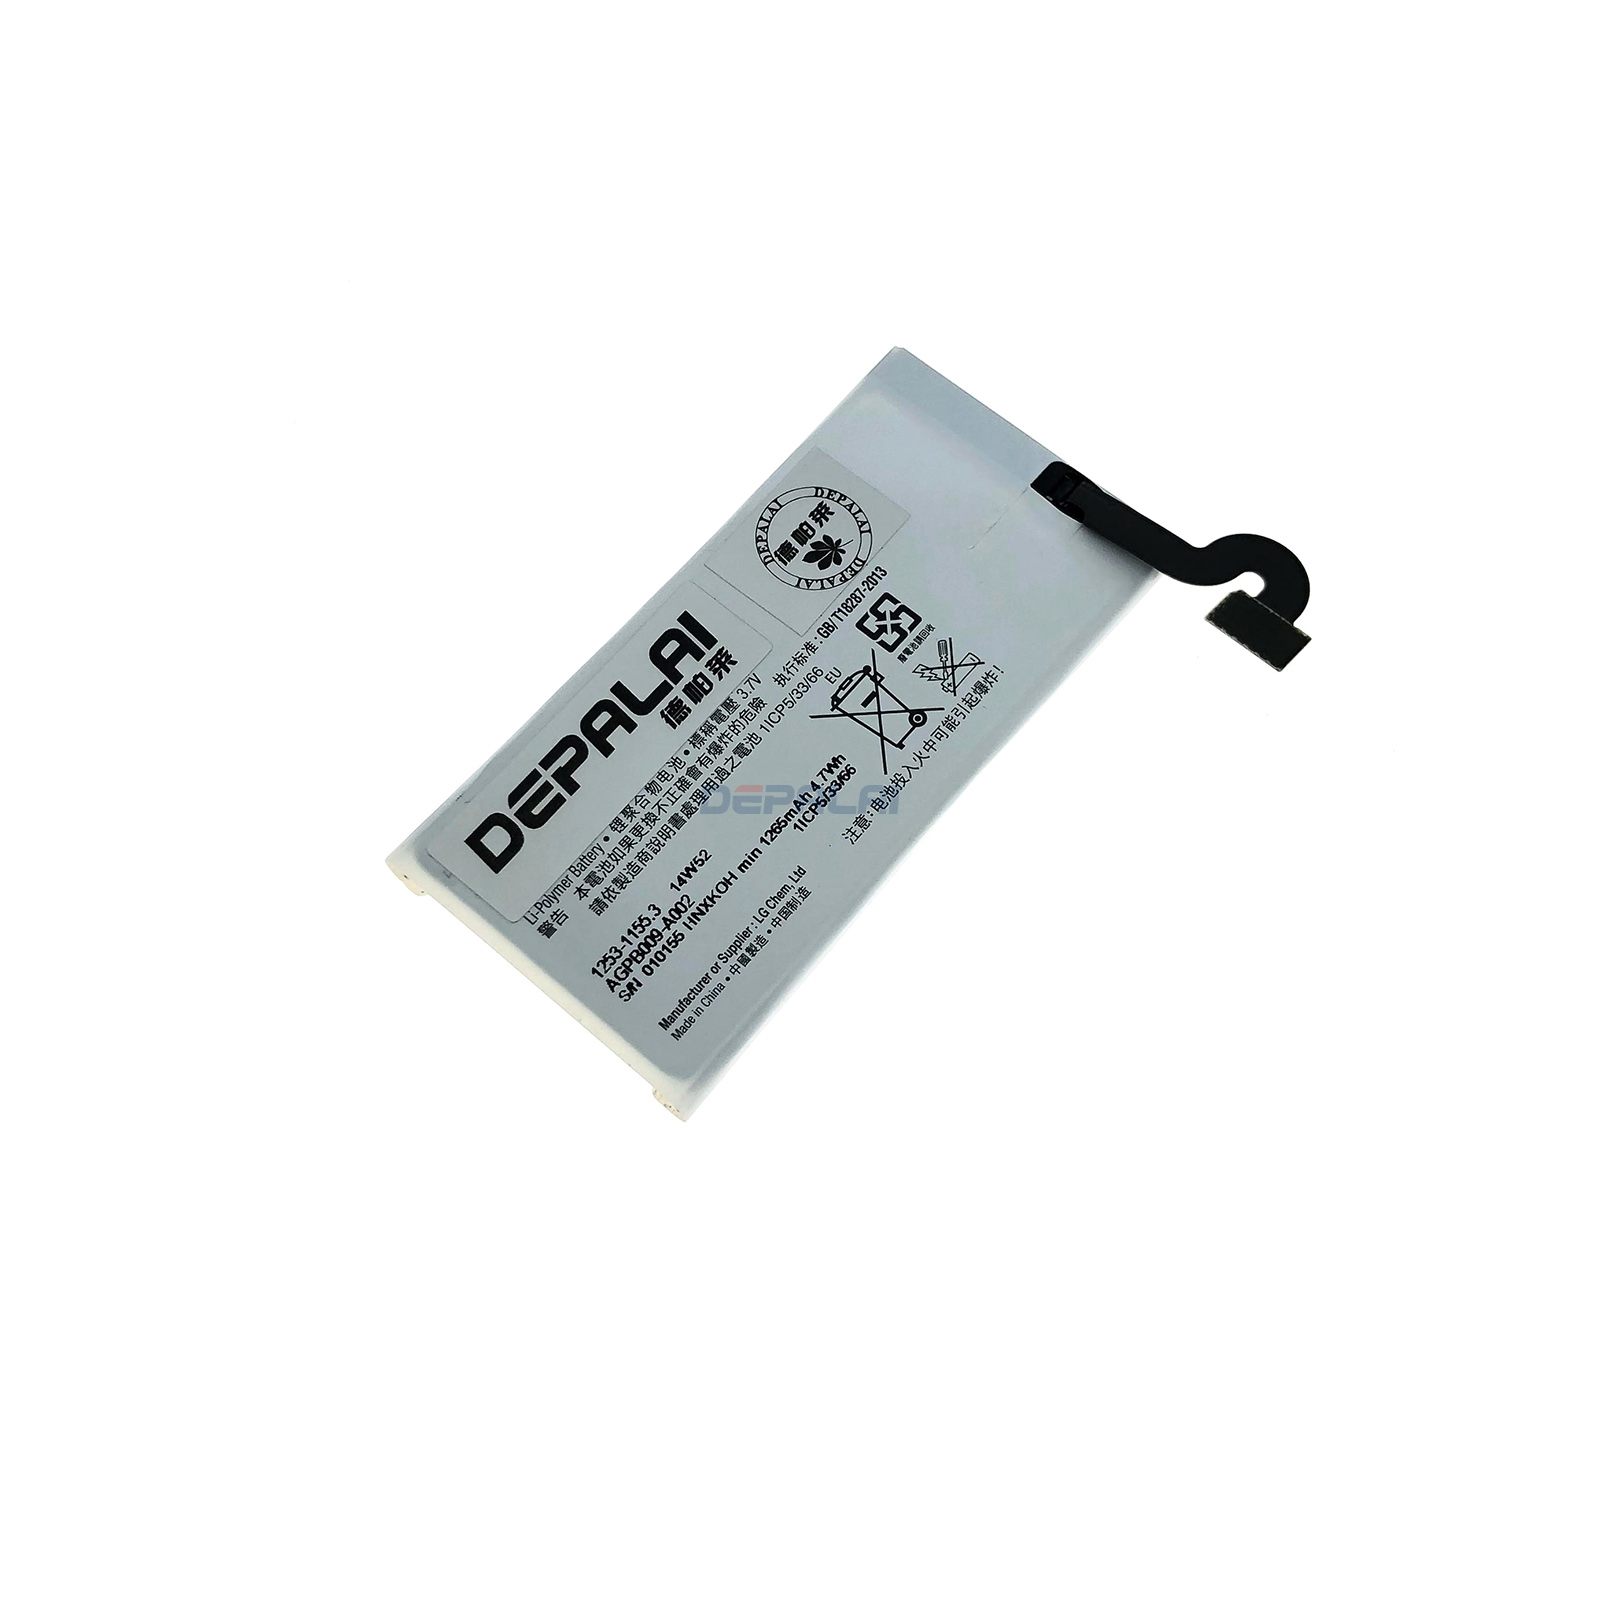 Mobile Phone <font><b>Battery</b></font> For Sony Xperia <font><b>Sola</b></font> MT27 MT27i MT27a Pepper Replacement <font><b>Battery</b></font> 1265mAh AGPB009-A002 image